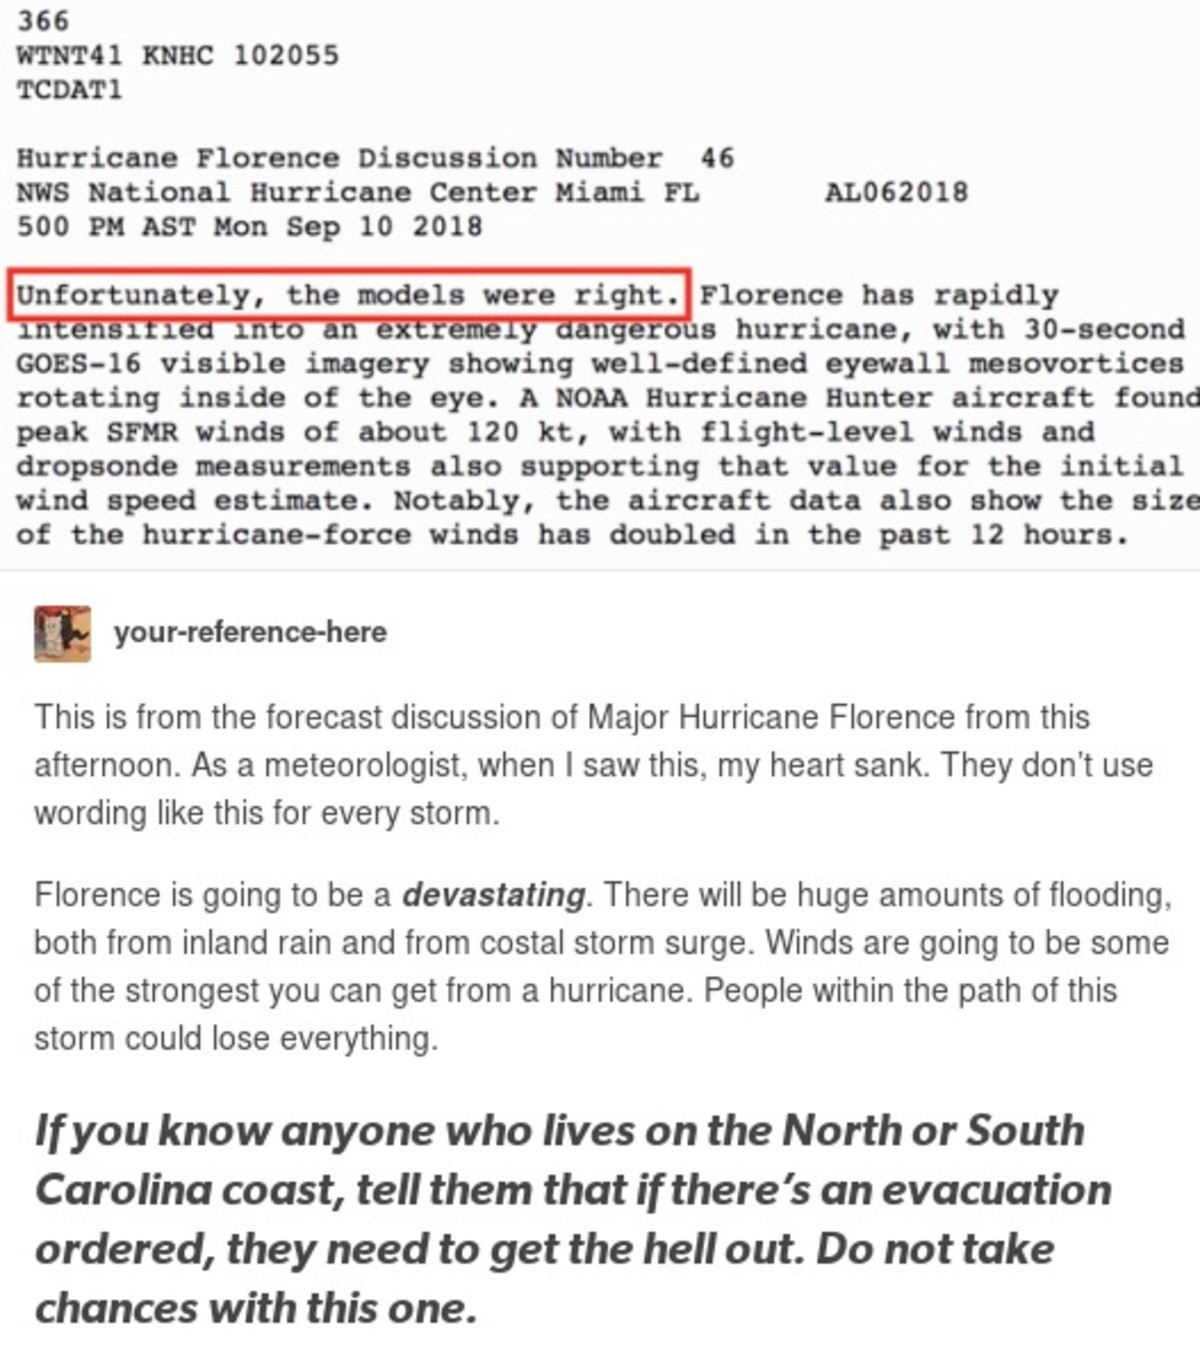 PSA Hurricane Florence. This is an emergency warning for all those in the path of Hurricane Florence. It has been determined that been getting worse and will hi